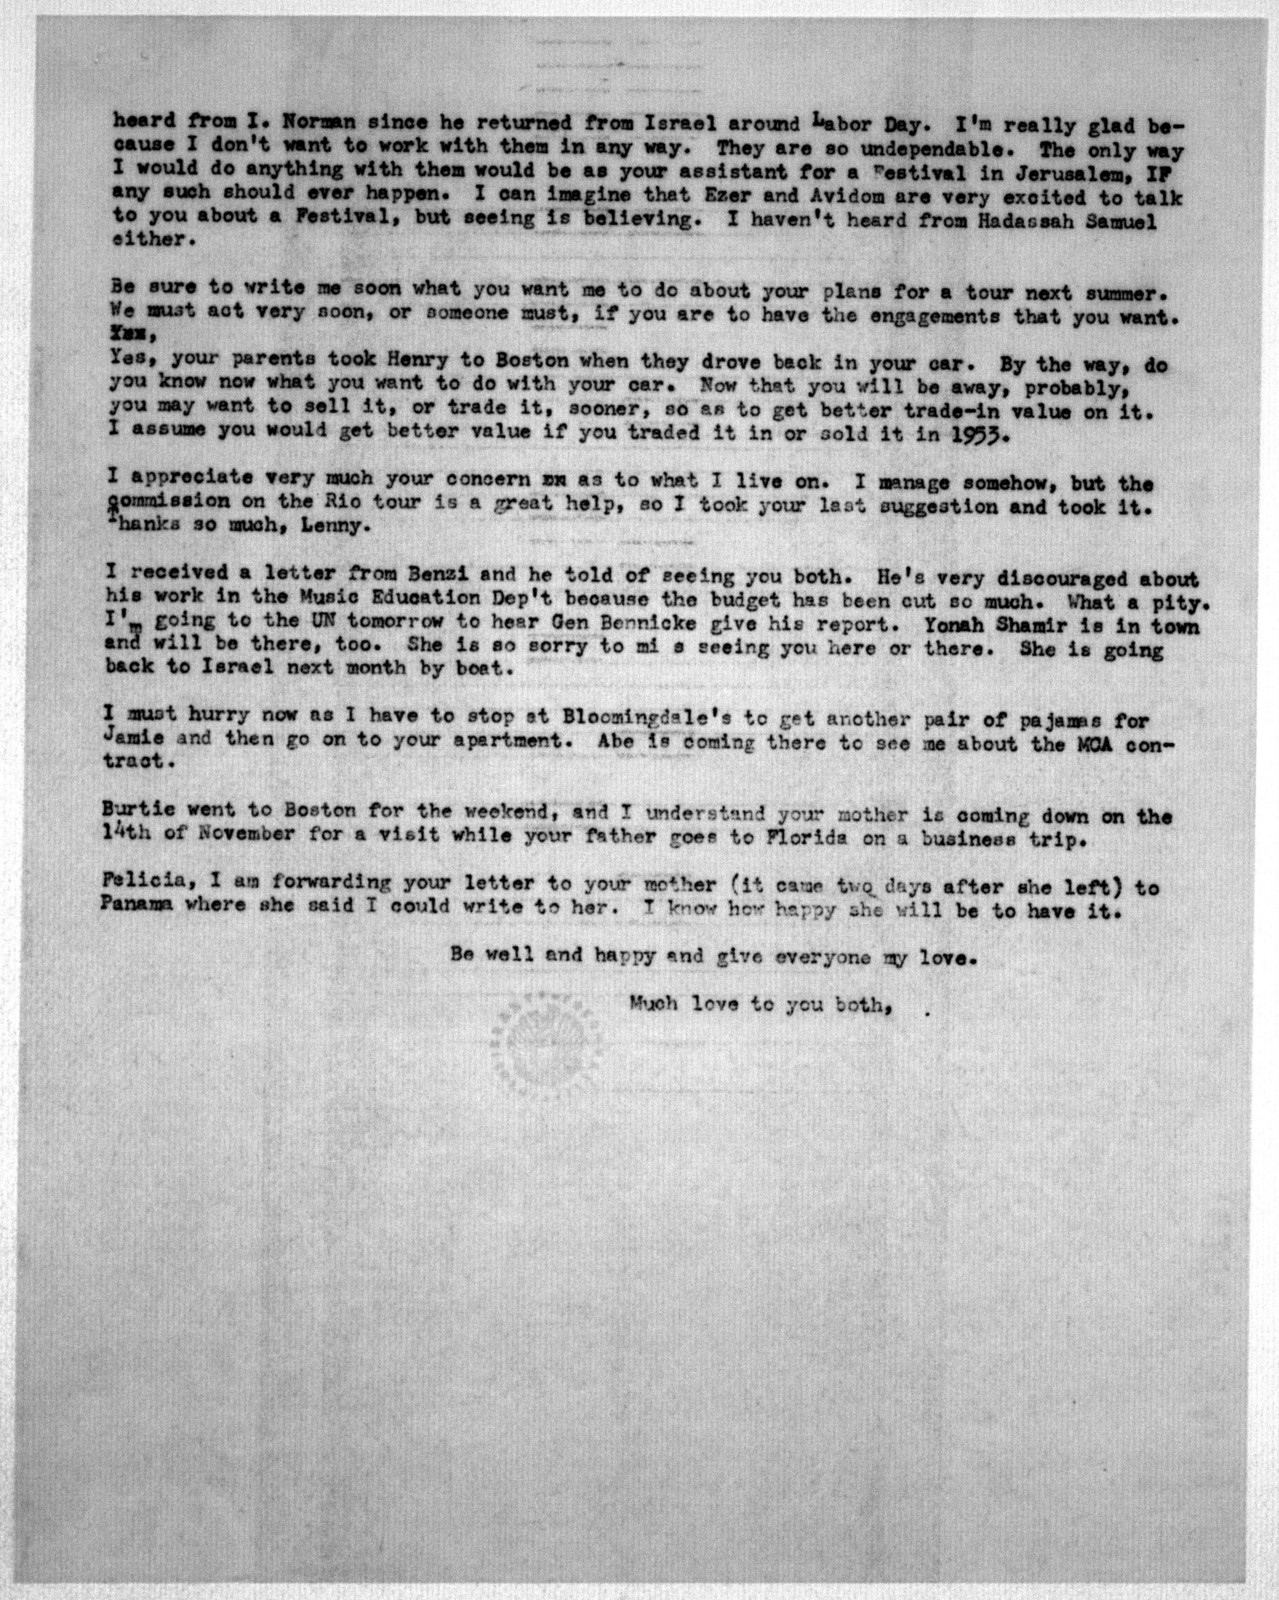 Letter from Helen Coates to Leonard & Felicia Bernstein, October 26, 1953